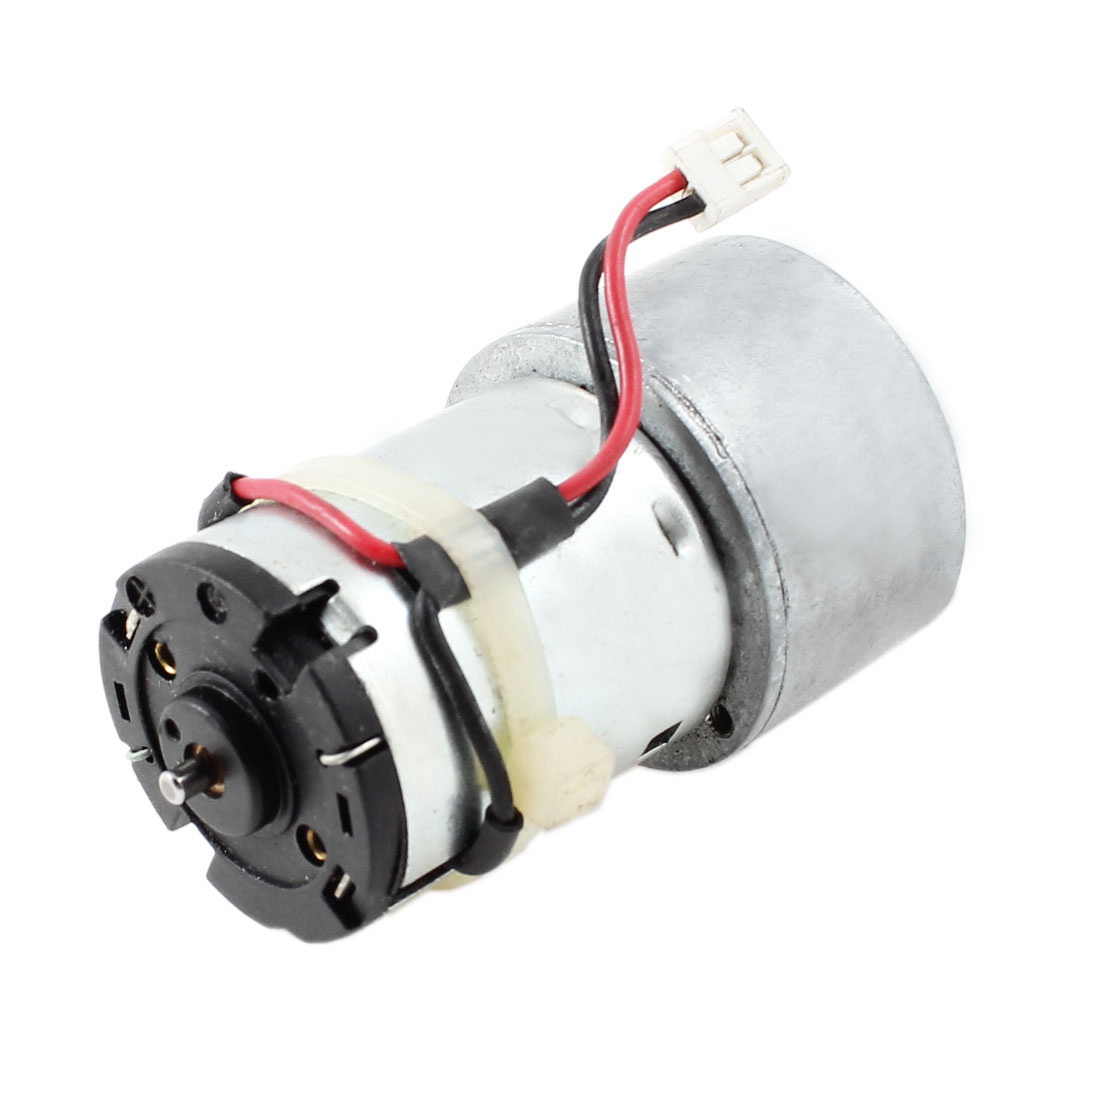 DC 6-12V 5mm Shaft Dia 62-133RPM Output Speed Reducer Electric Geared Motor